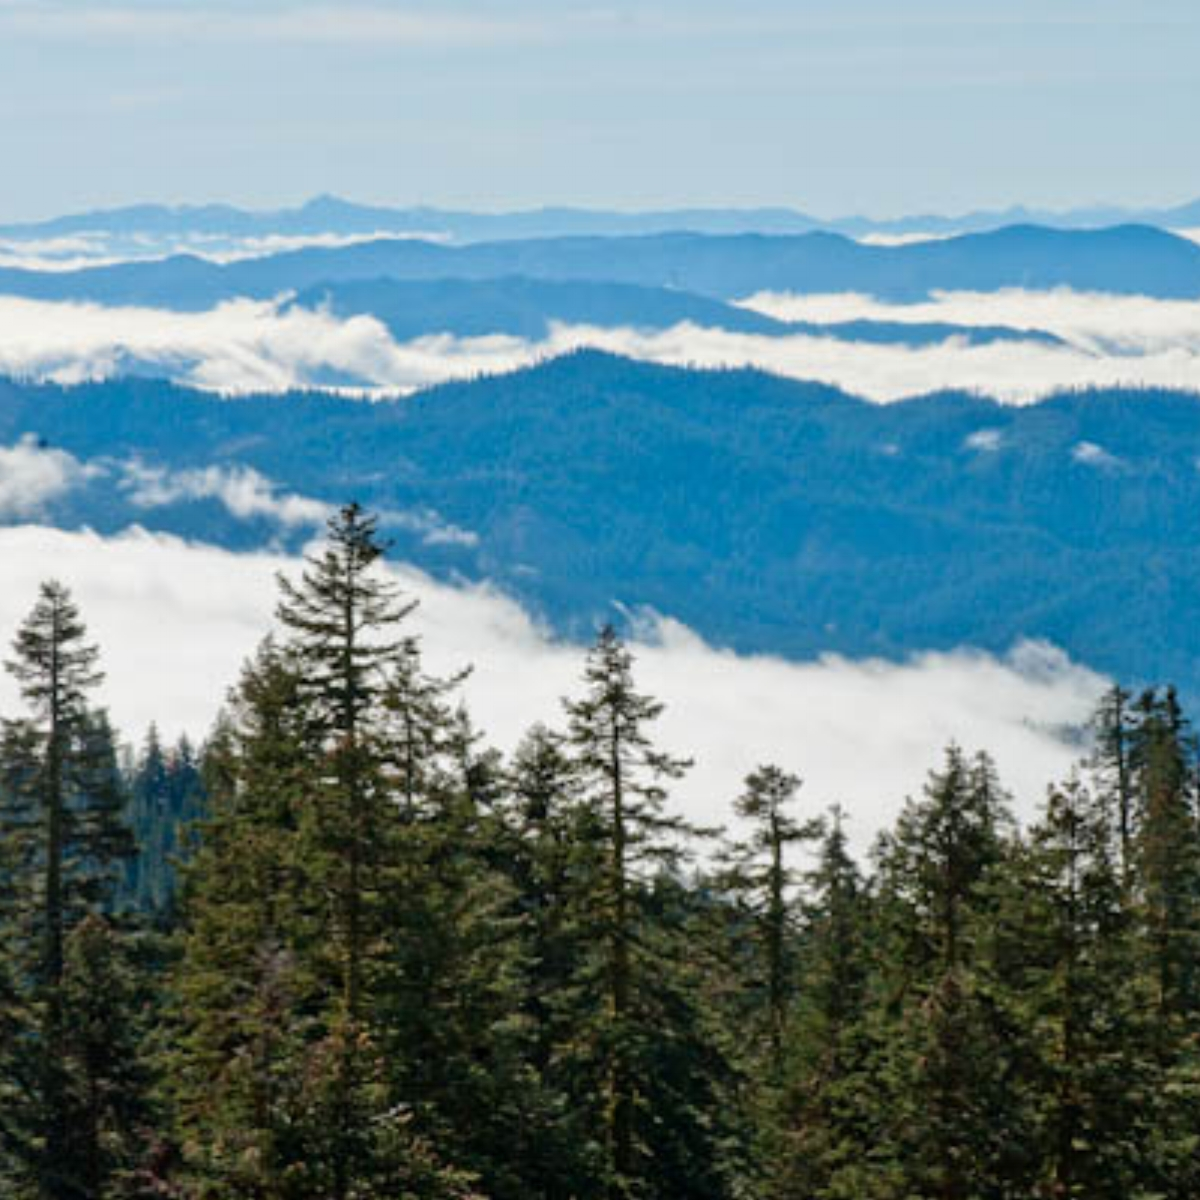 Fog shrouds valley Siskiyou Mts. near Grouse Gap  on the California Oregon border George Wuerthner 6457-2 copy.jpg